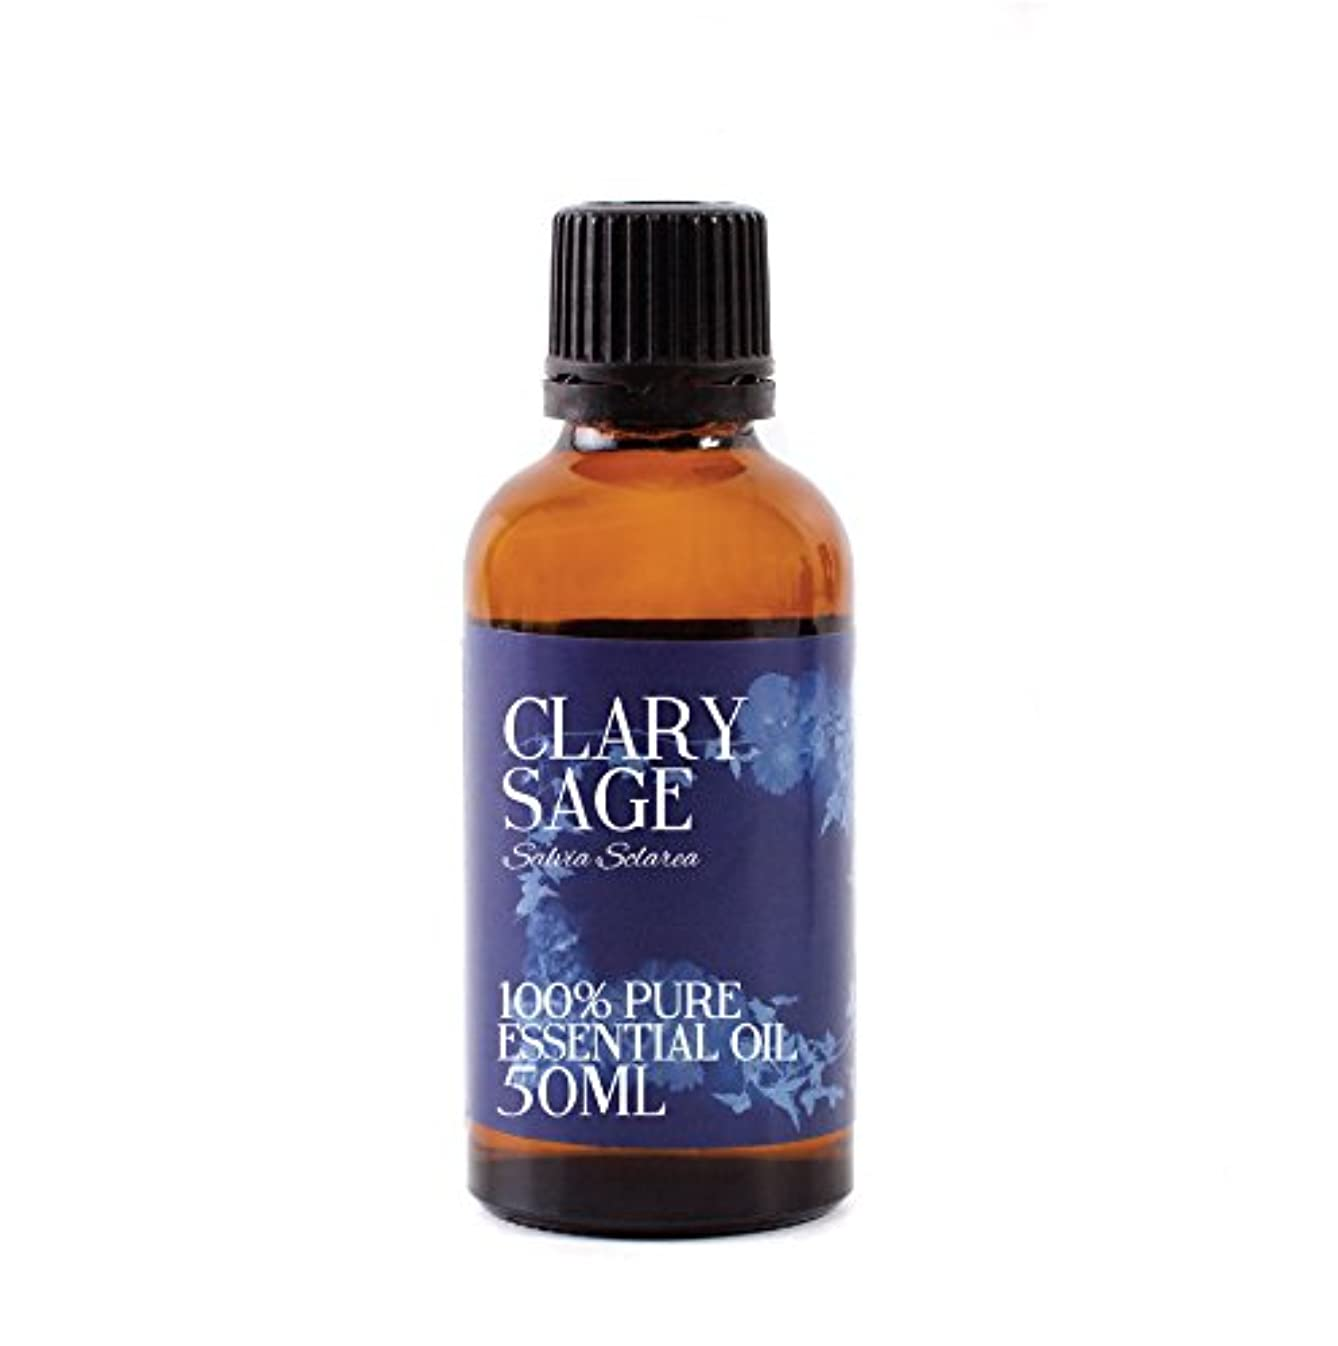 Mystic Moments | Clary Sage Essential Oil - 50ml - 100% Pure